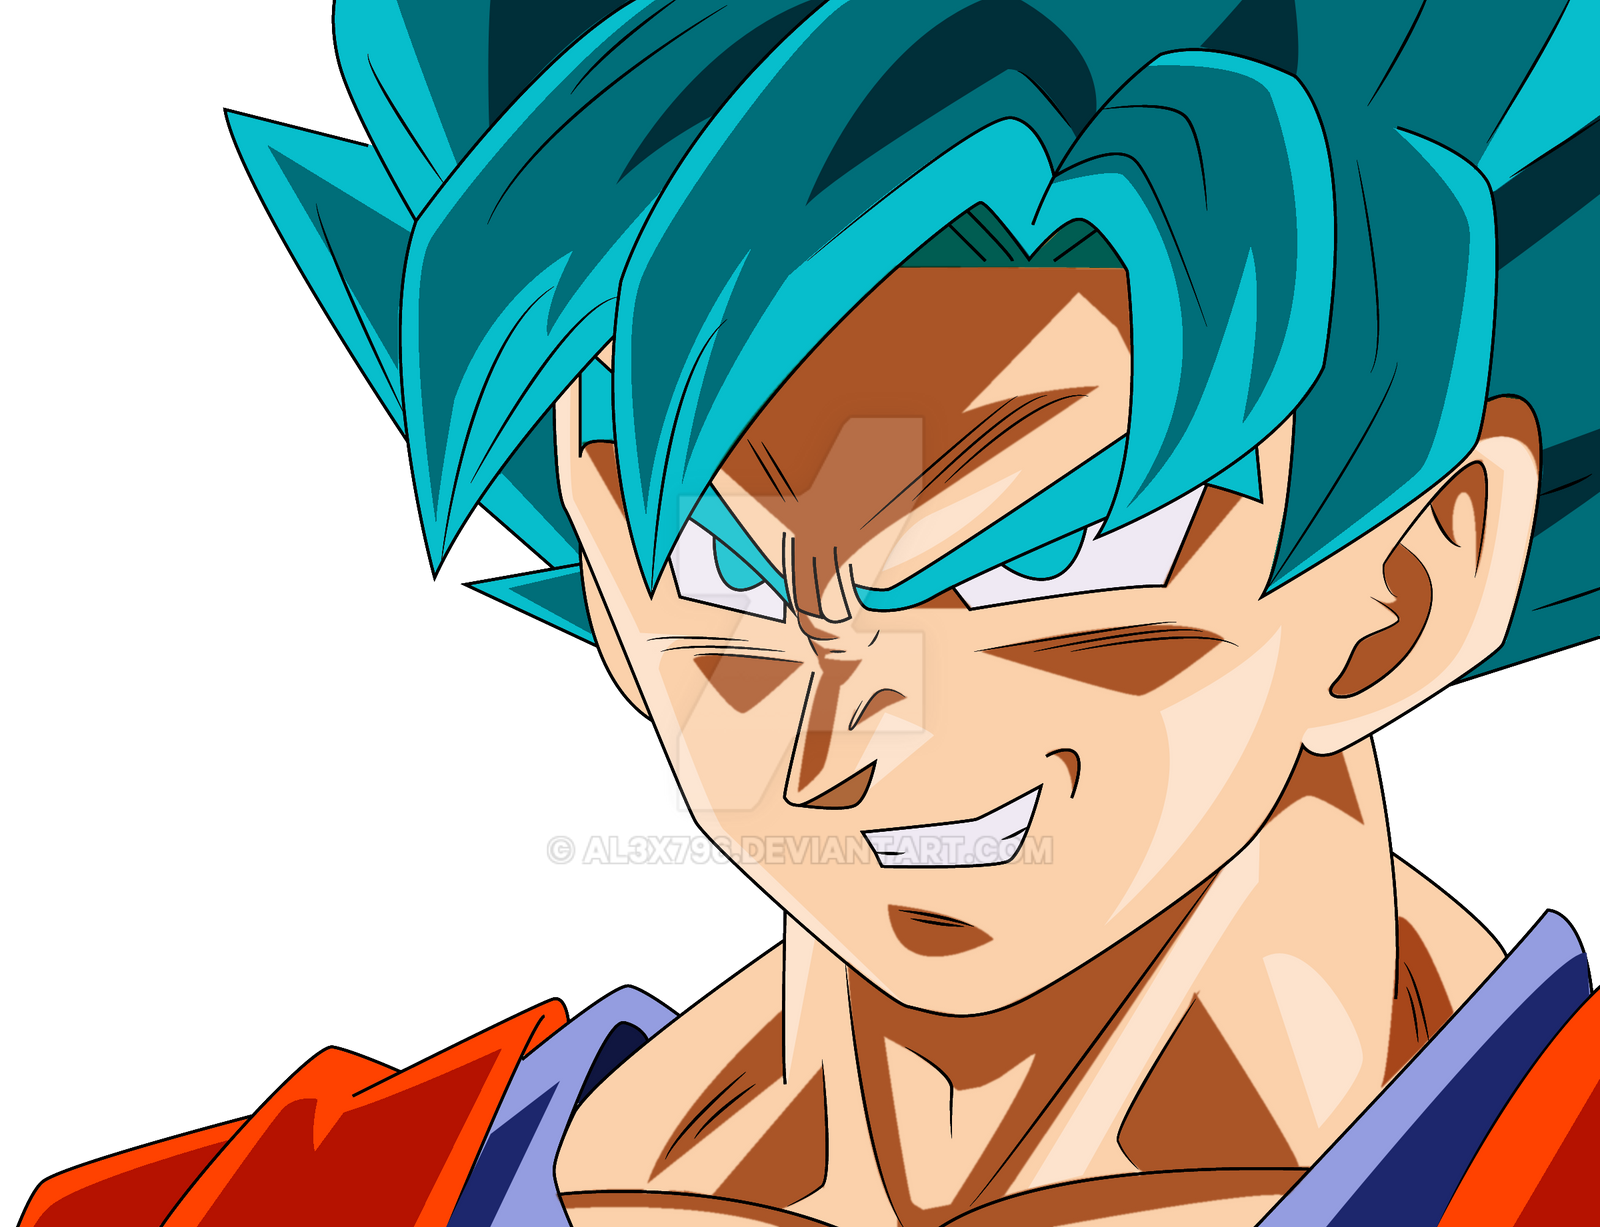 Goku Super Sayayin Dios Azul Para Colorear: Goku Ssj Blue By AL3X796 On DeviantArt